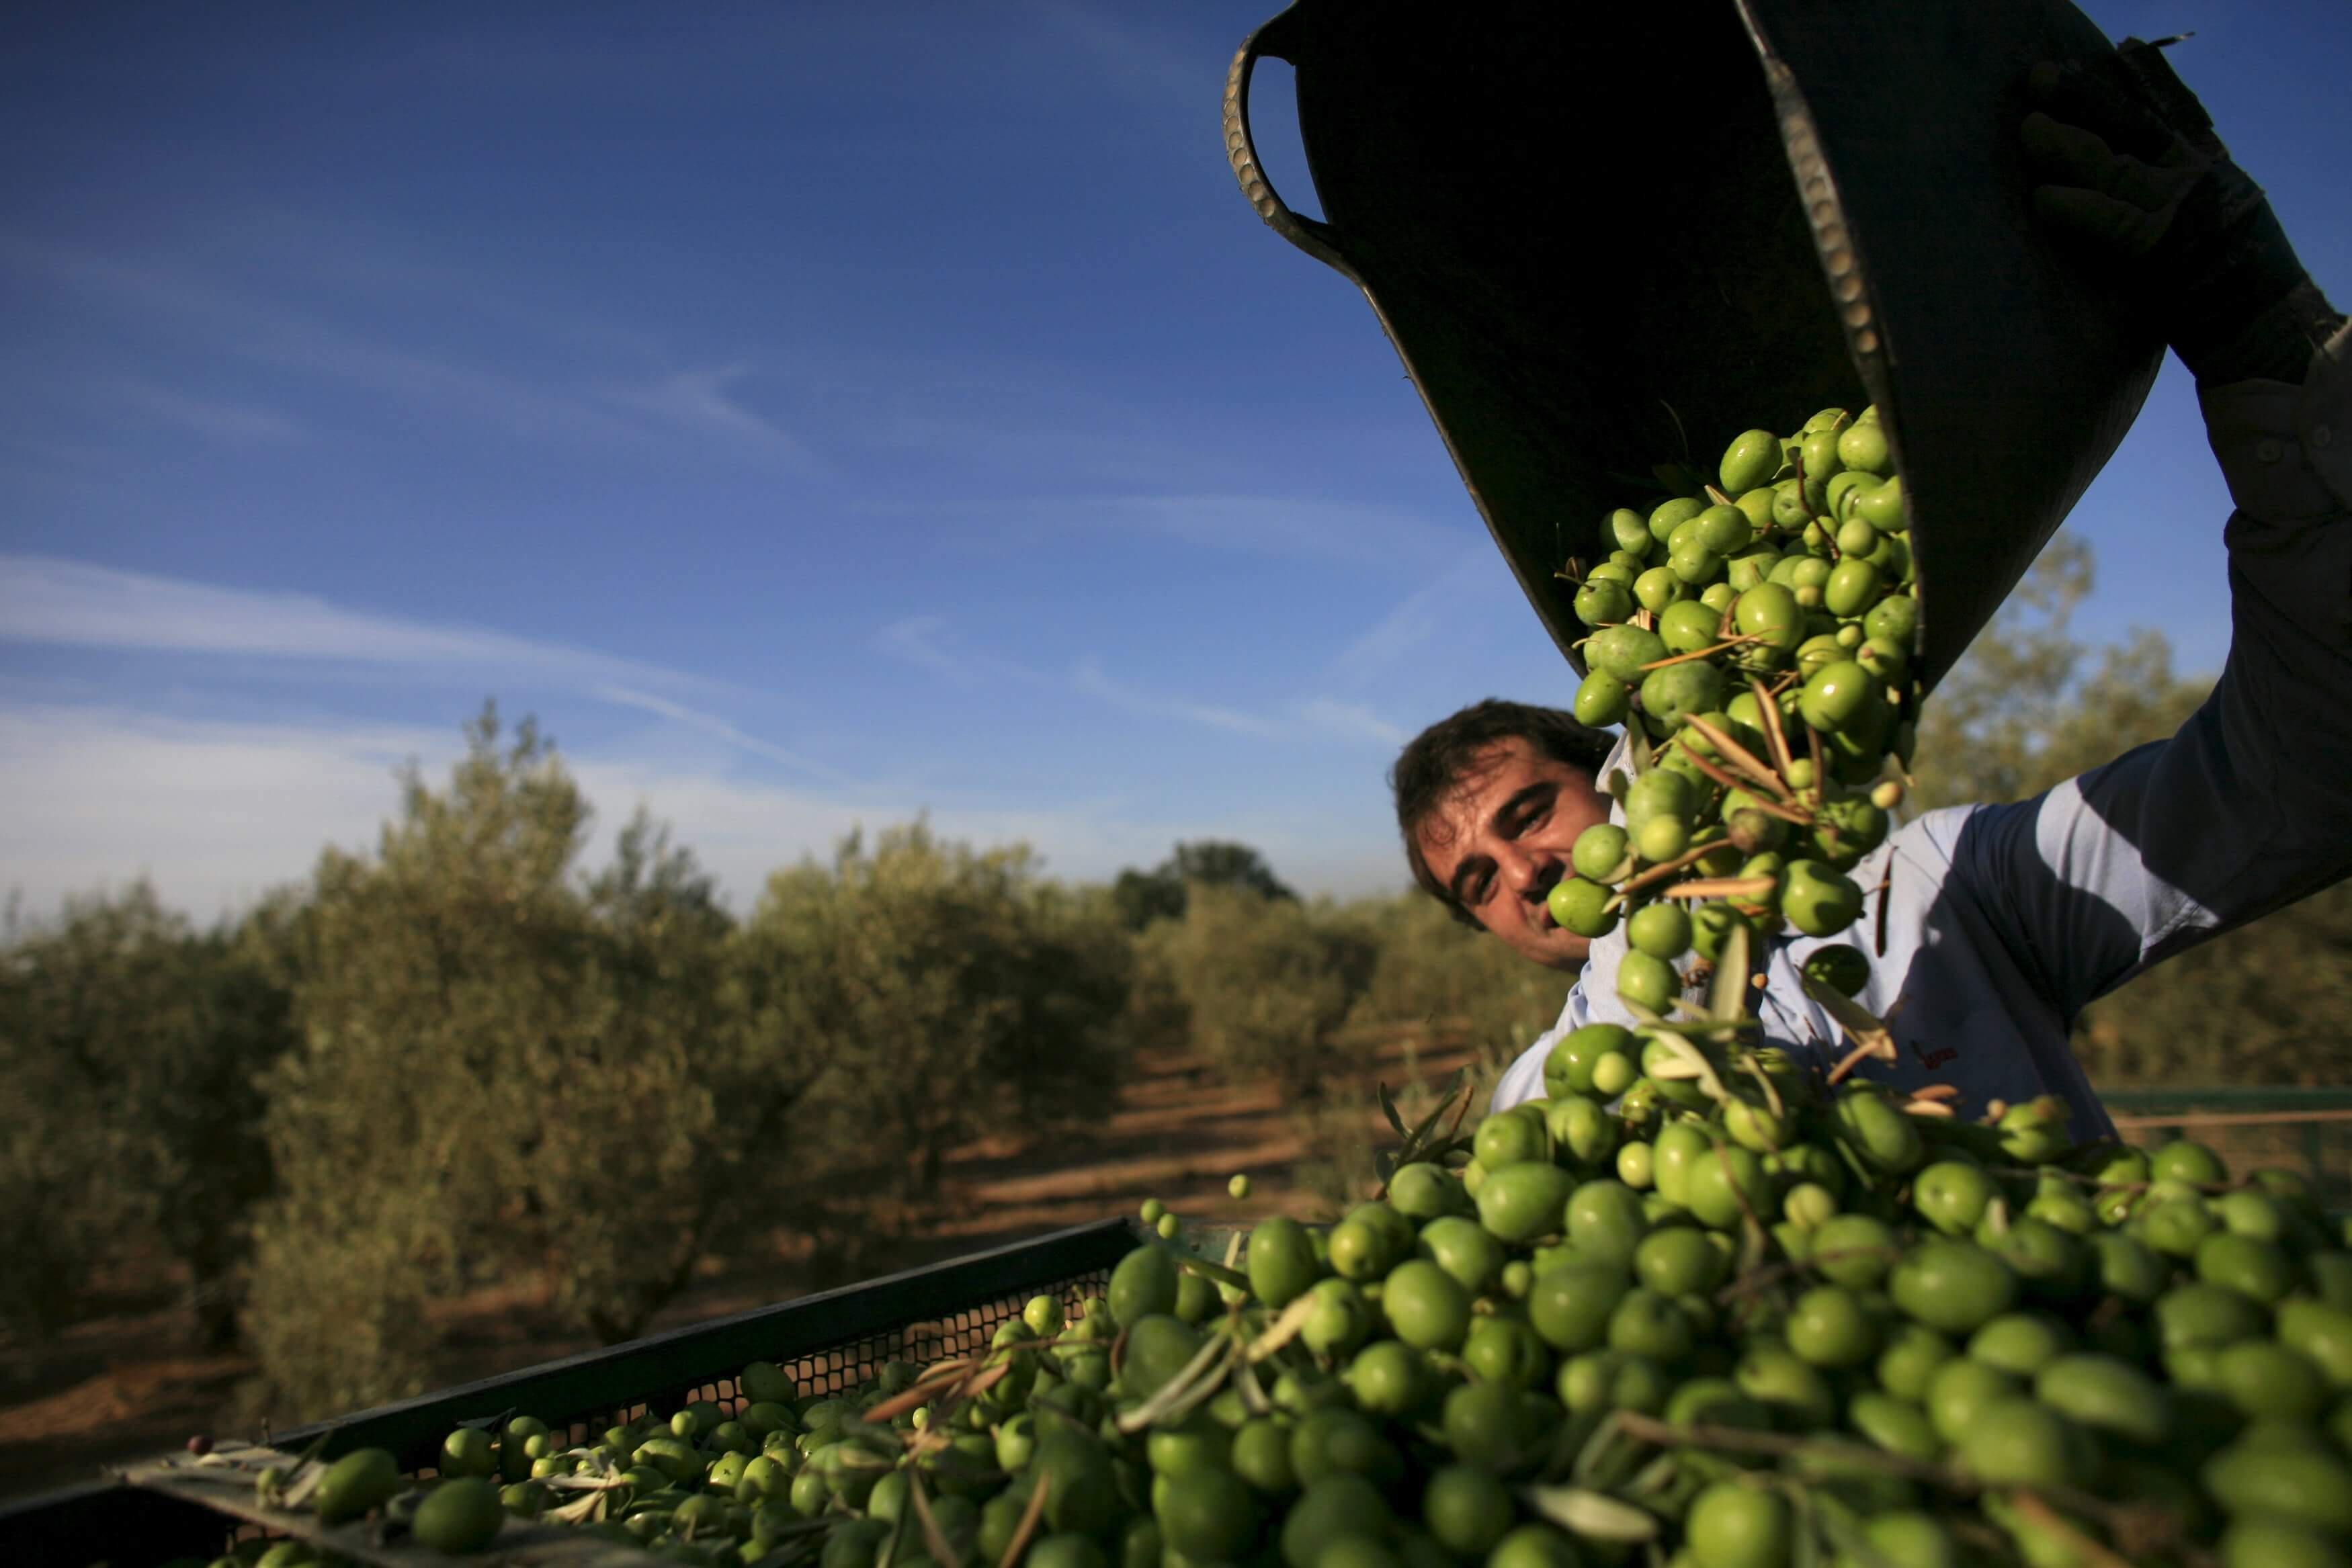 OLIVE CULTIVATION IN TURKEY